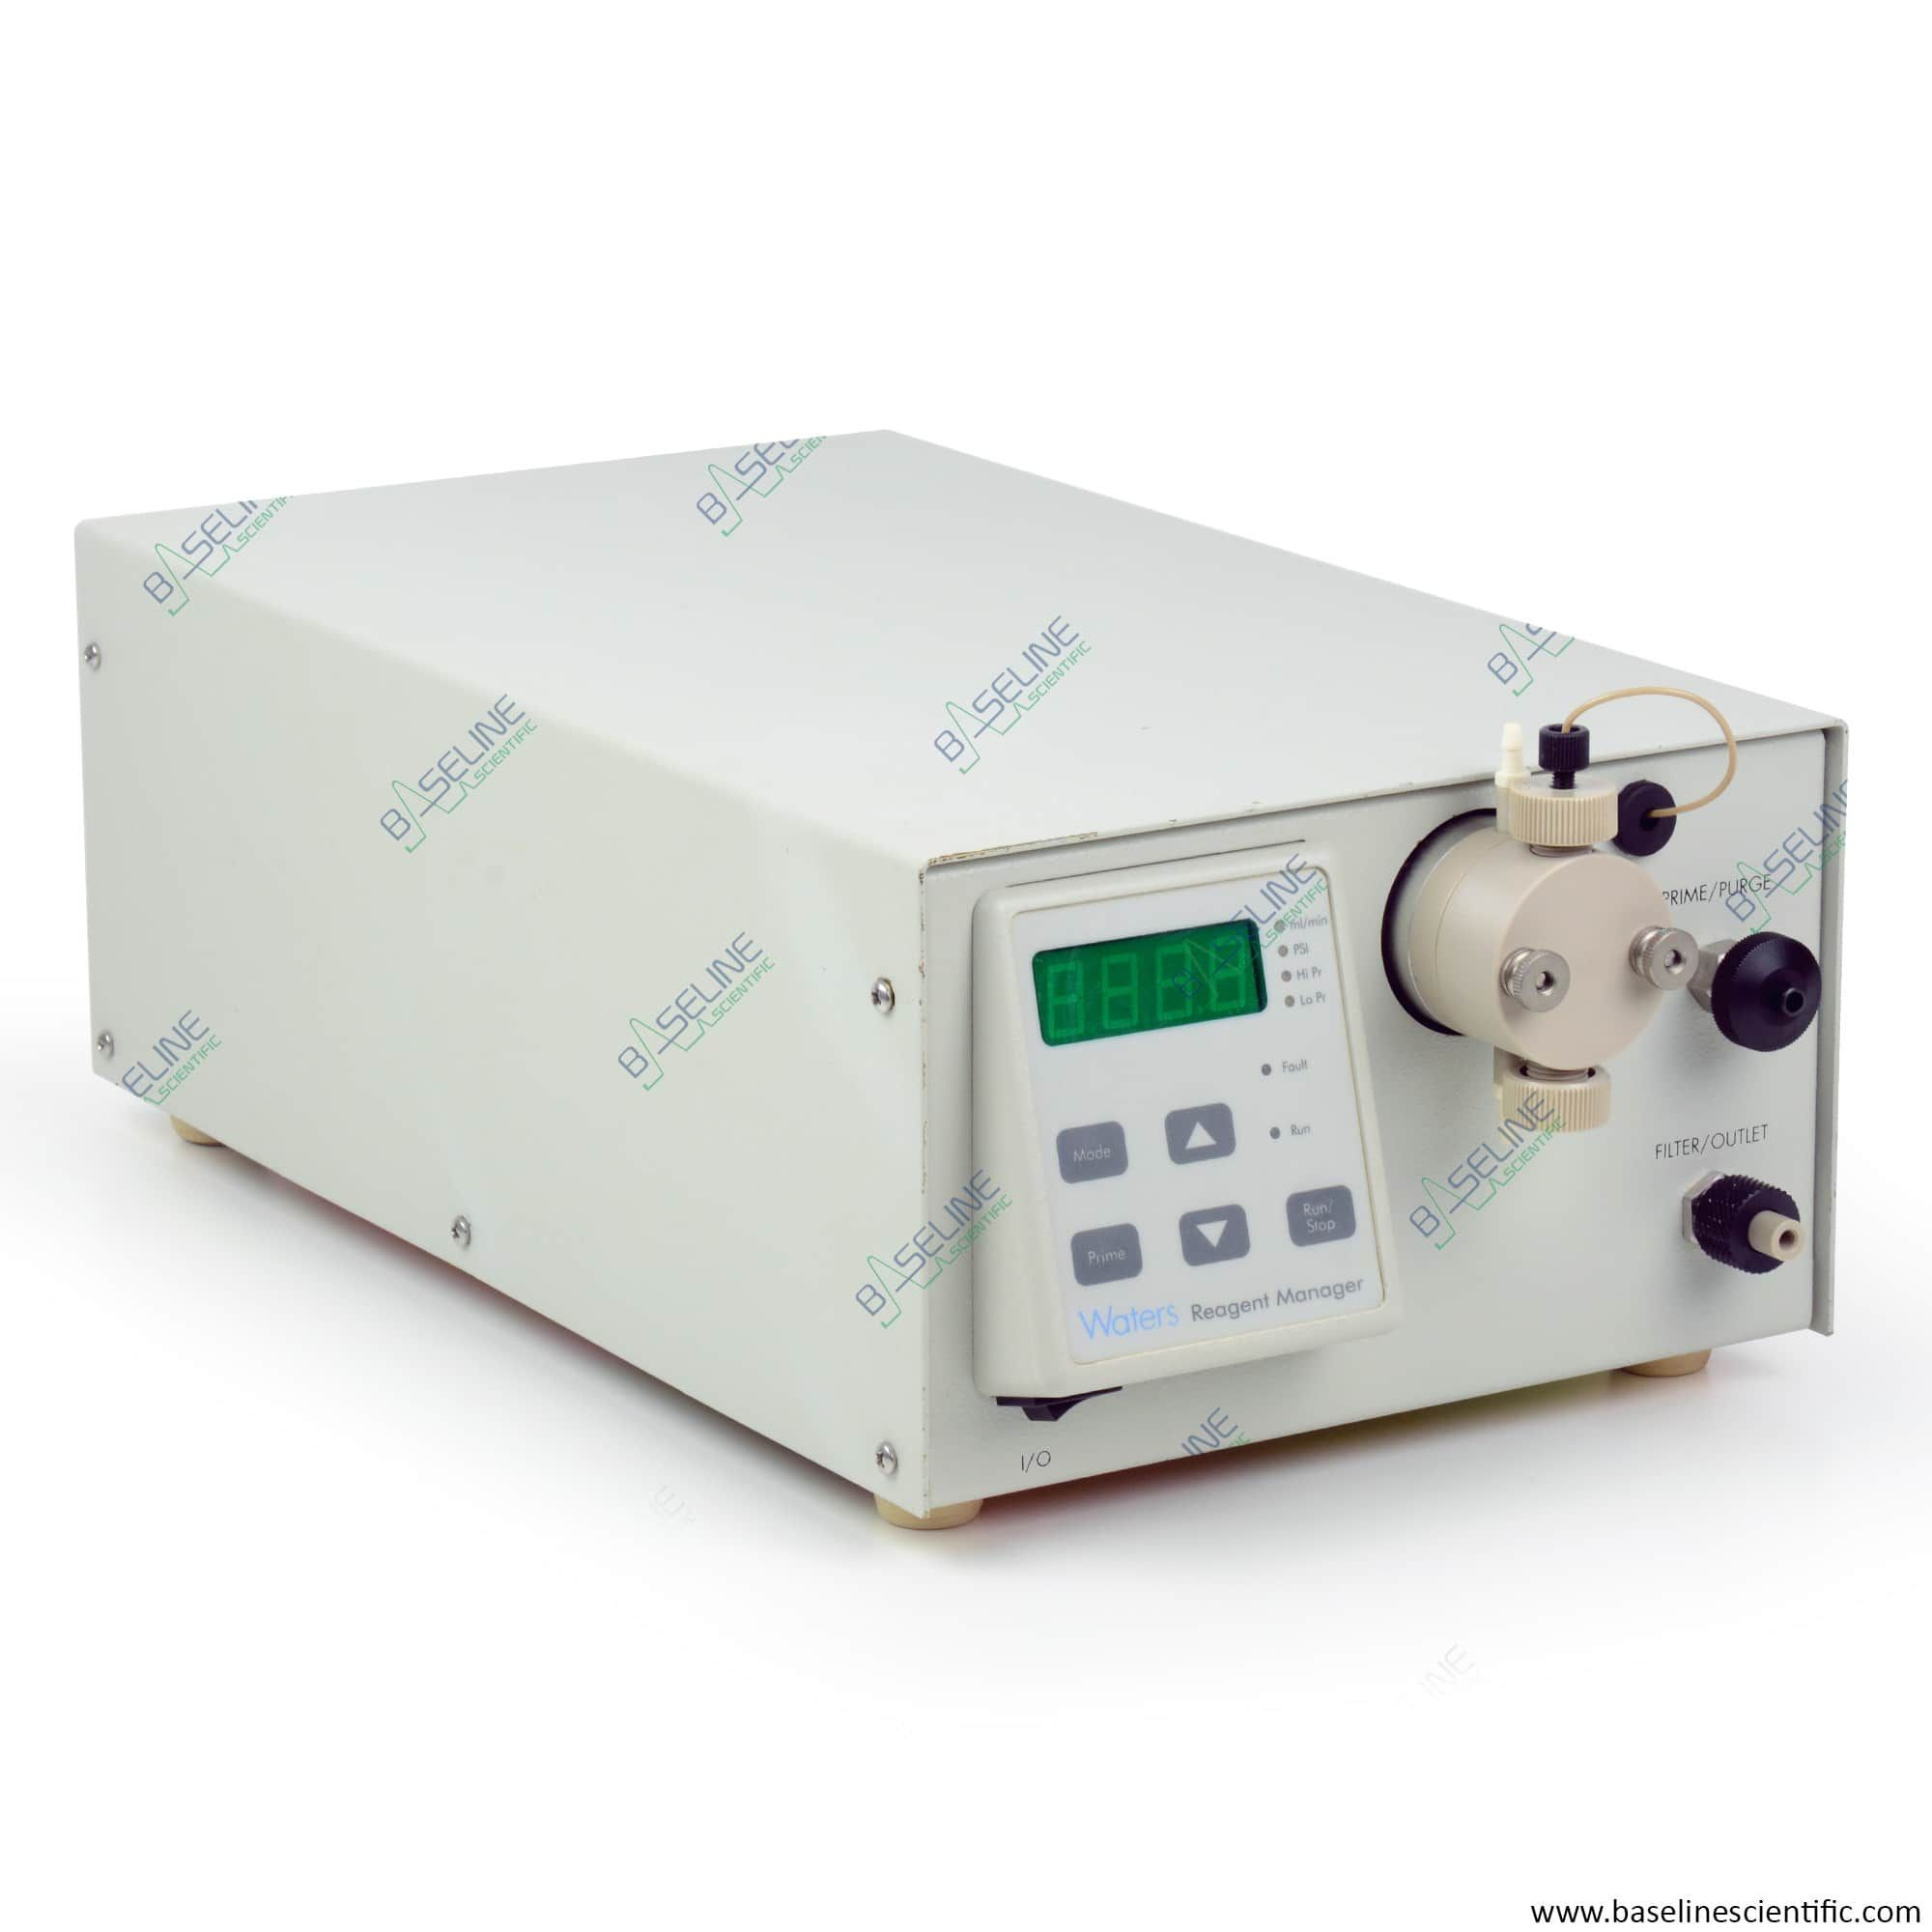 Refurbished Waters Reagent Manager with One Year Warranty